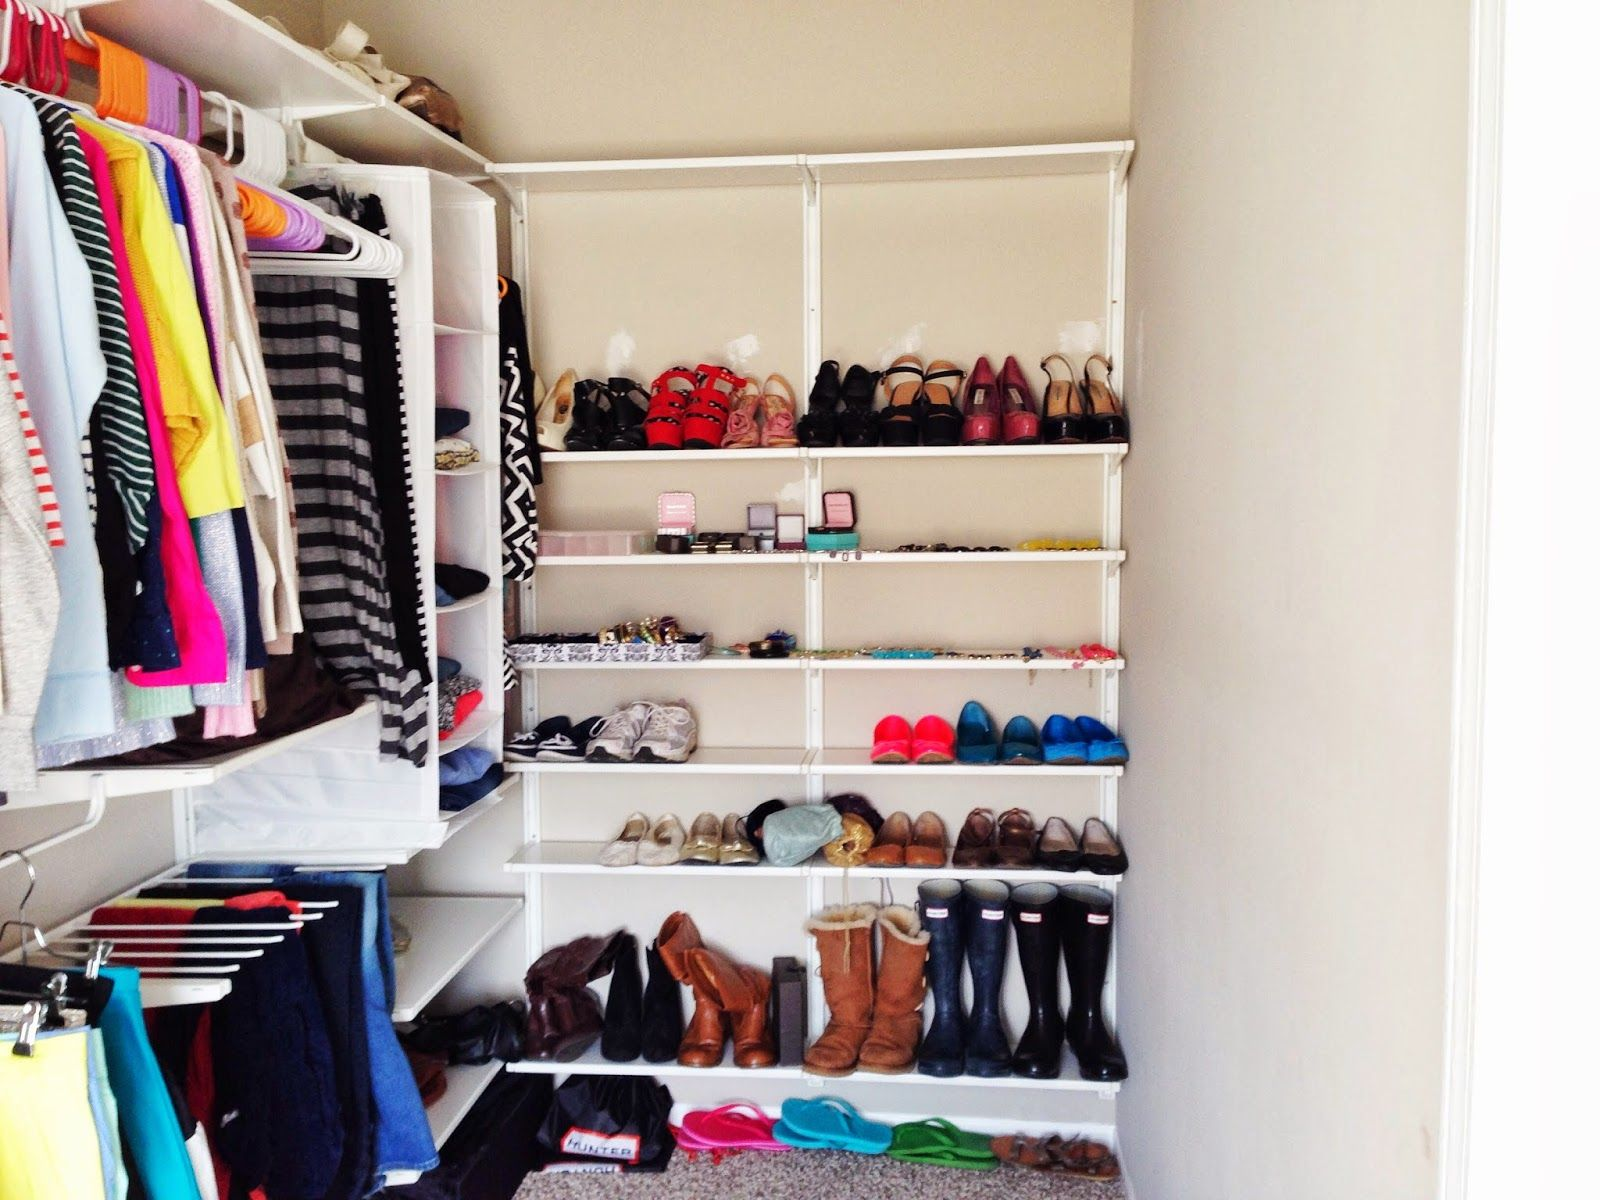 The Closet Of My Dreams: Building A New Algot System | Lilibelle Marie